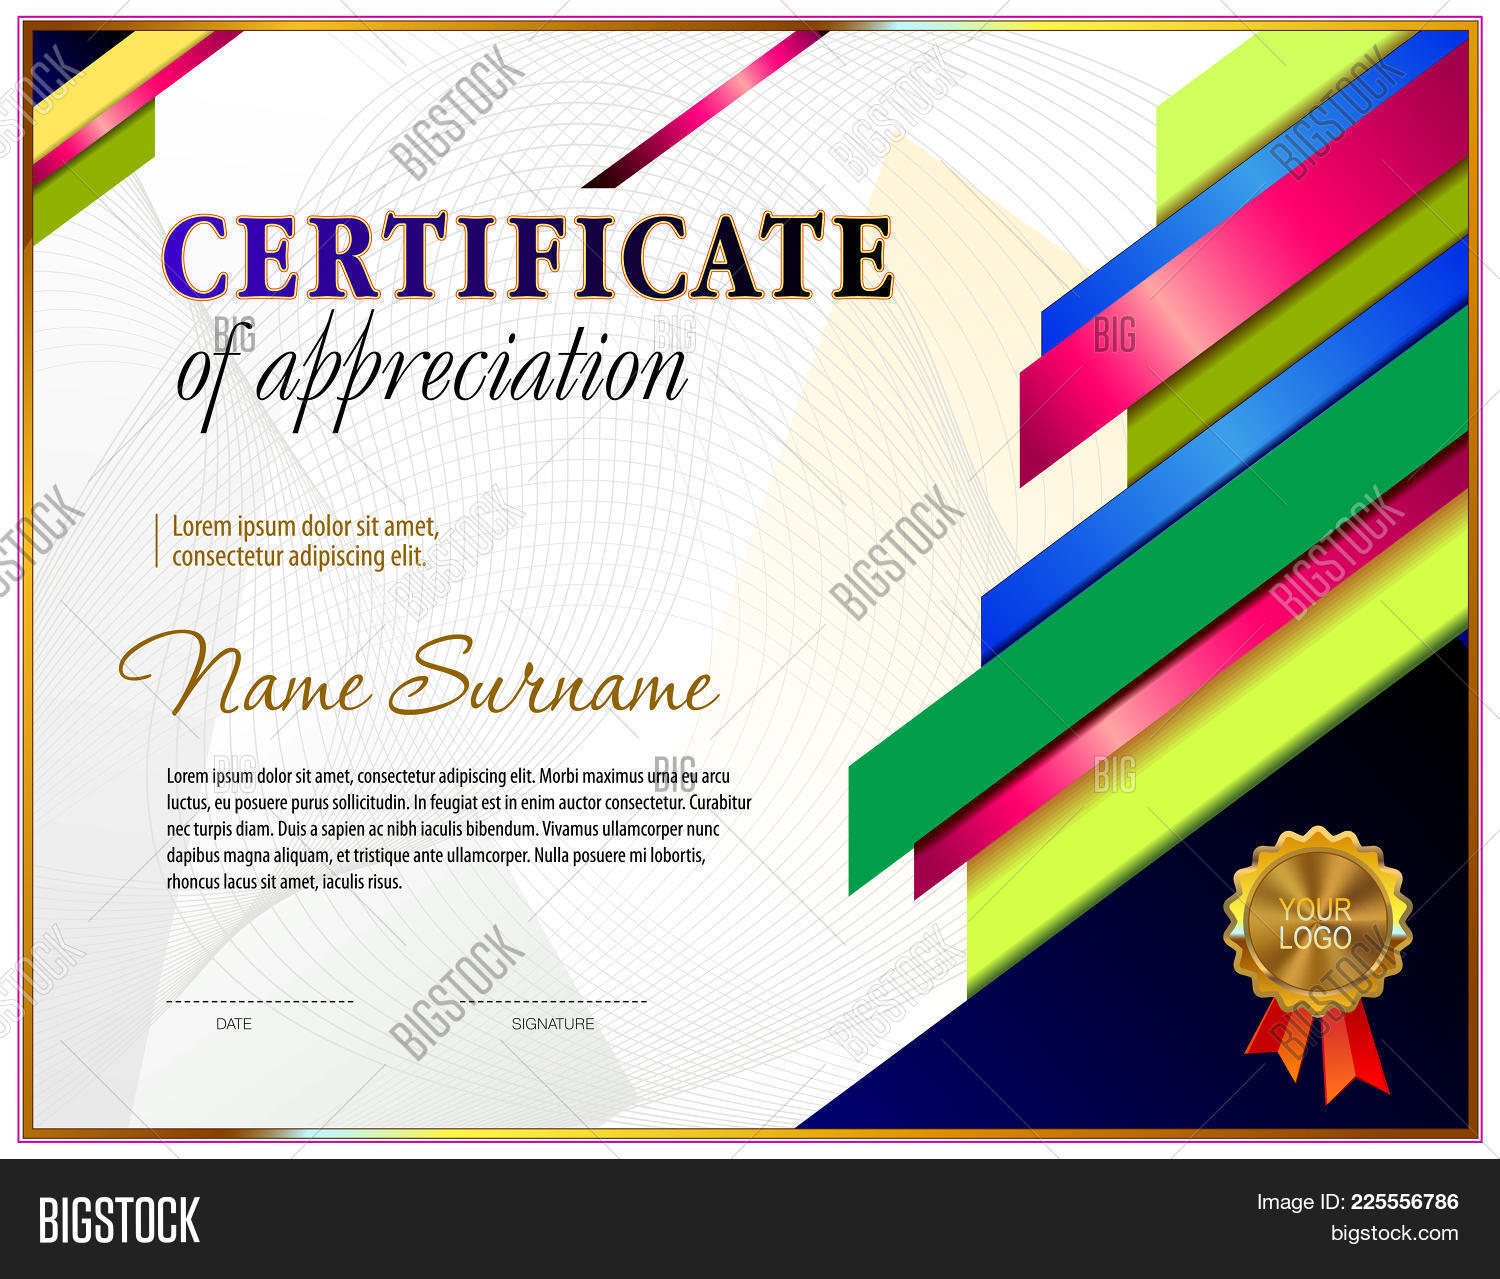 Certificate Of Appreciation Powerpoint Template Powerpoint Template